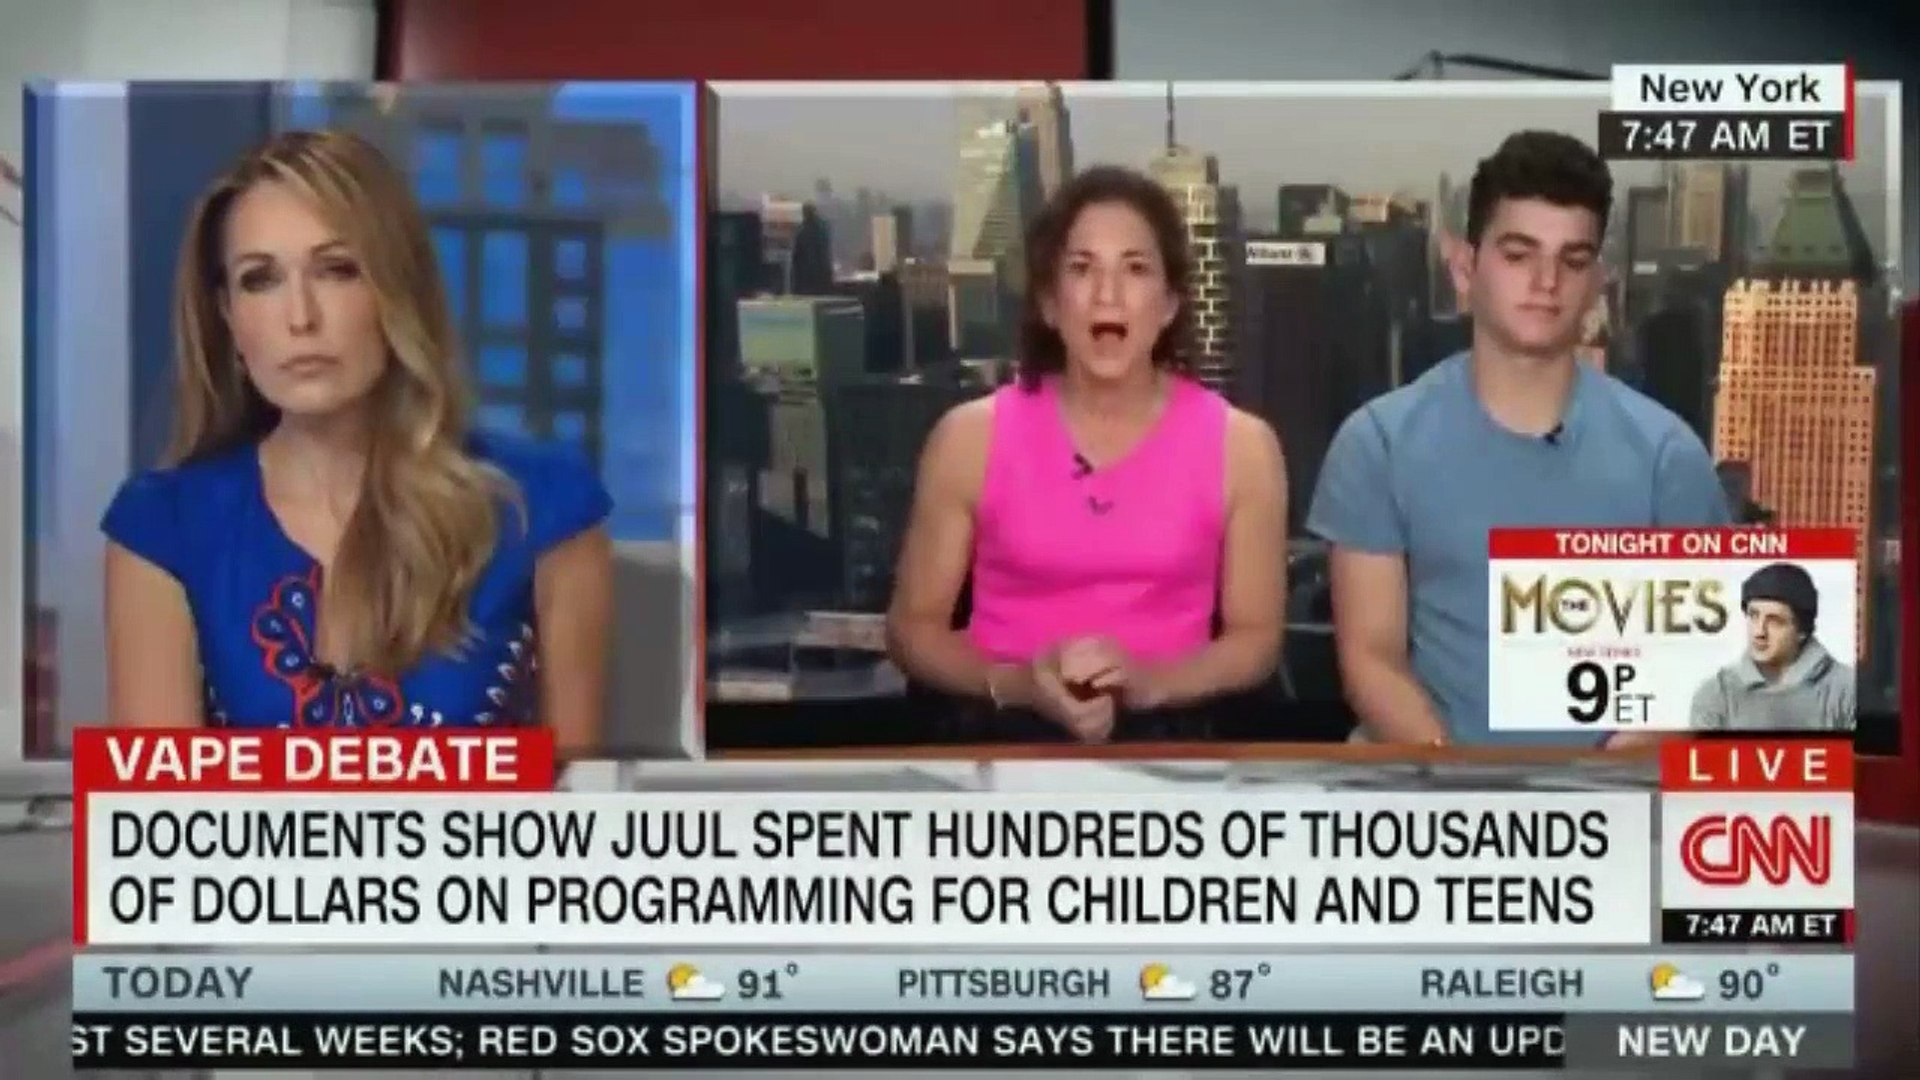 DOCUMENTS SHOW JUUL SPENT HUNDREDS OF THOUSANDS OF DOLLARS ON PROGRAMMING FOR CHILDREN AND TEENS. CN